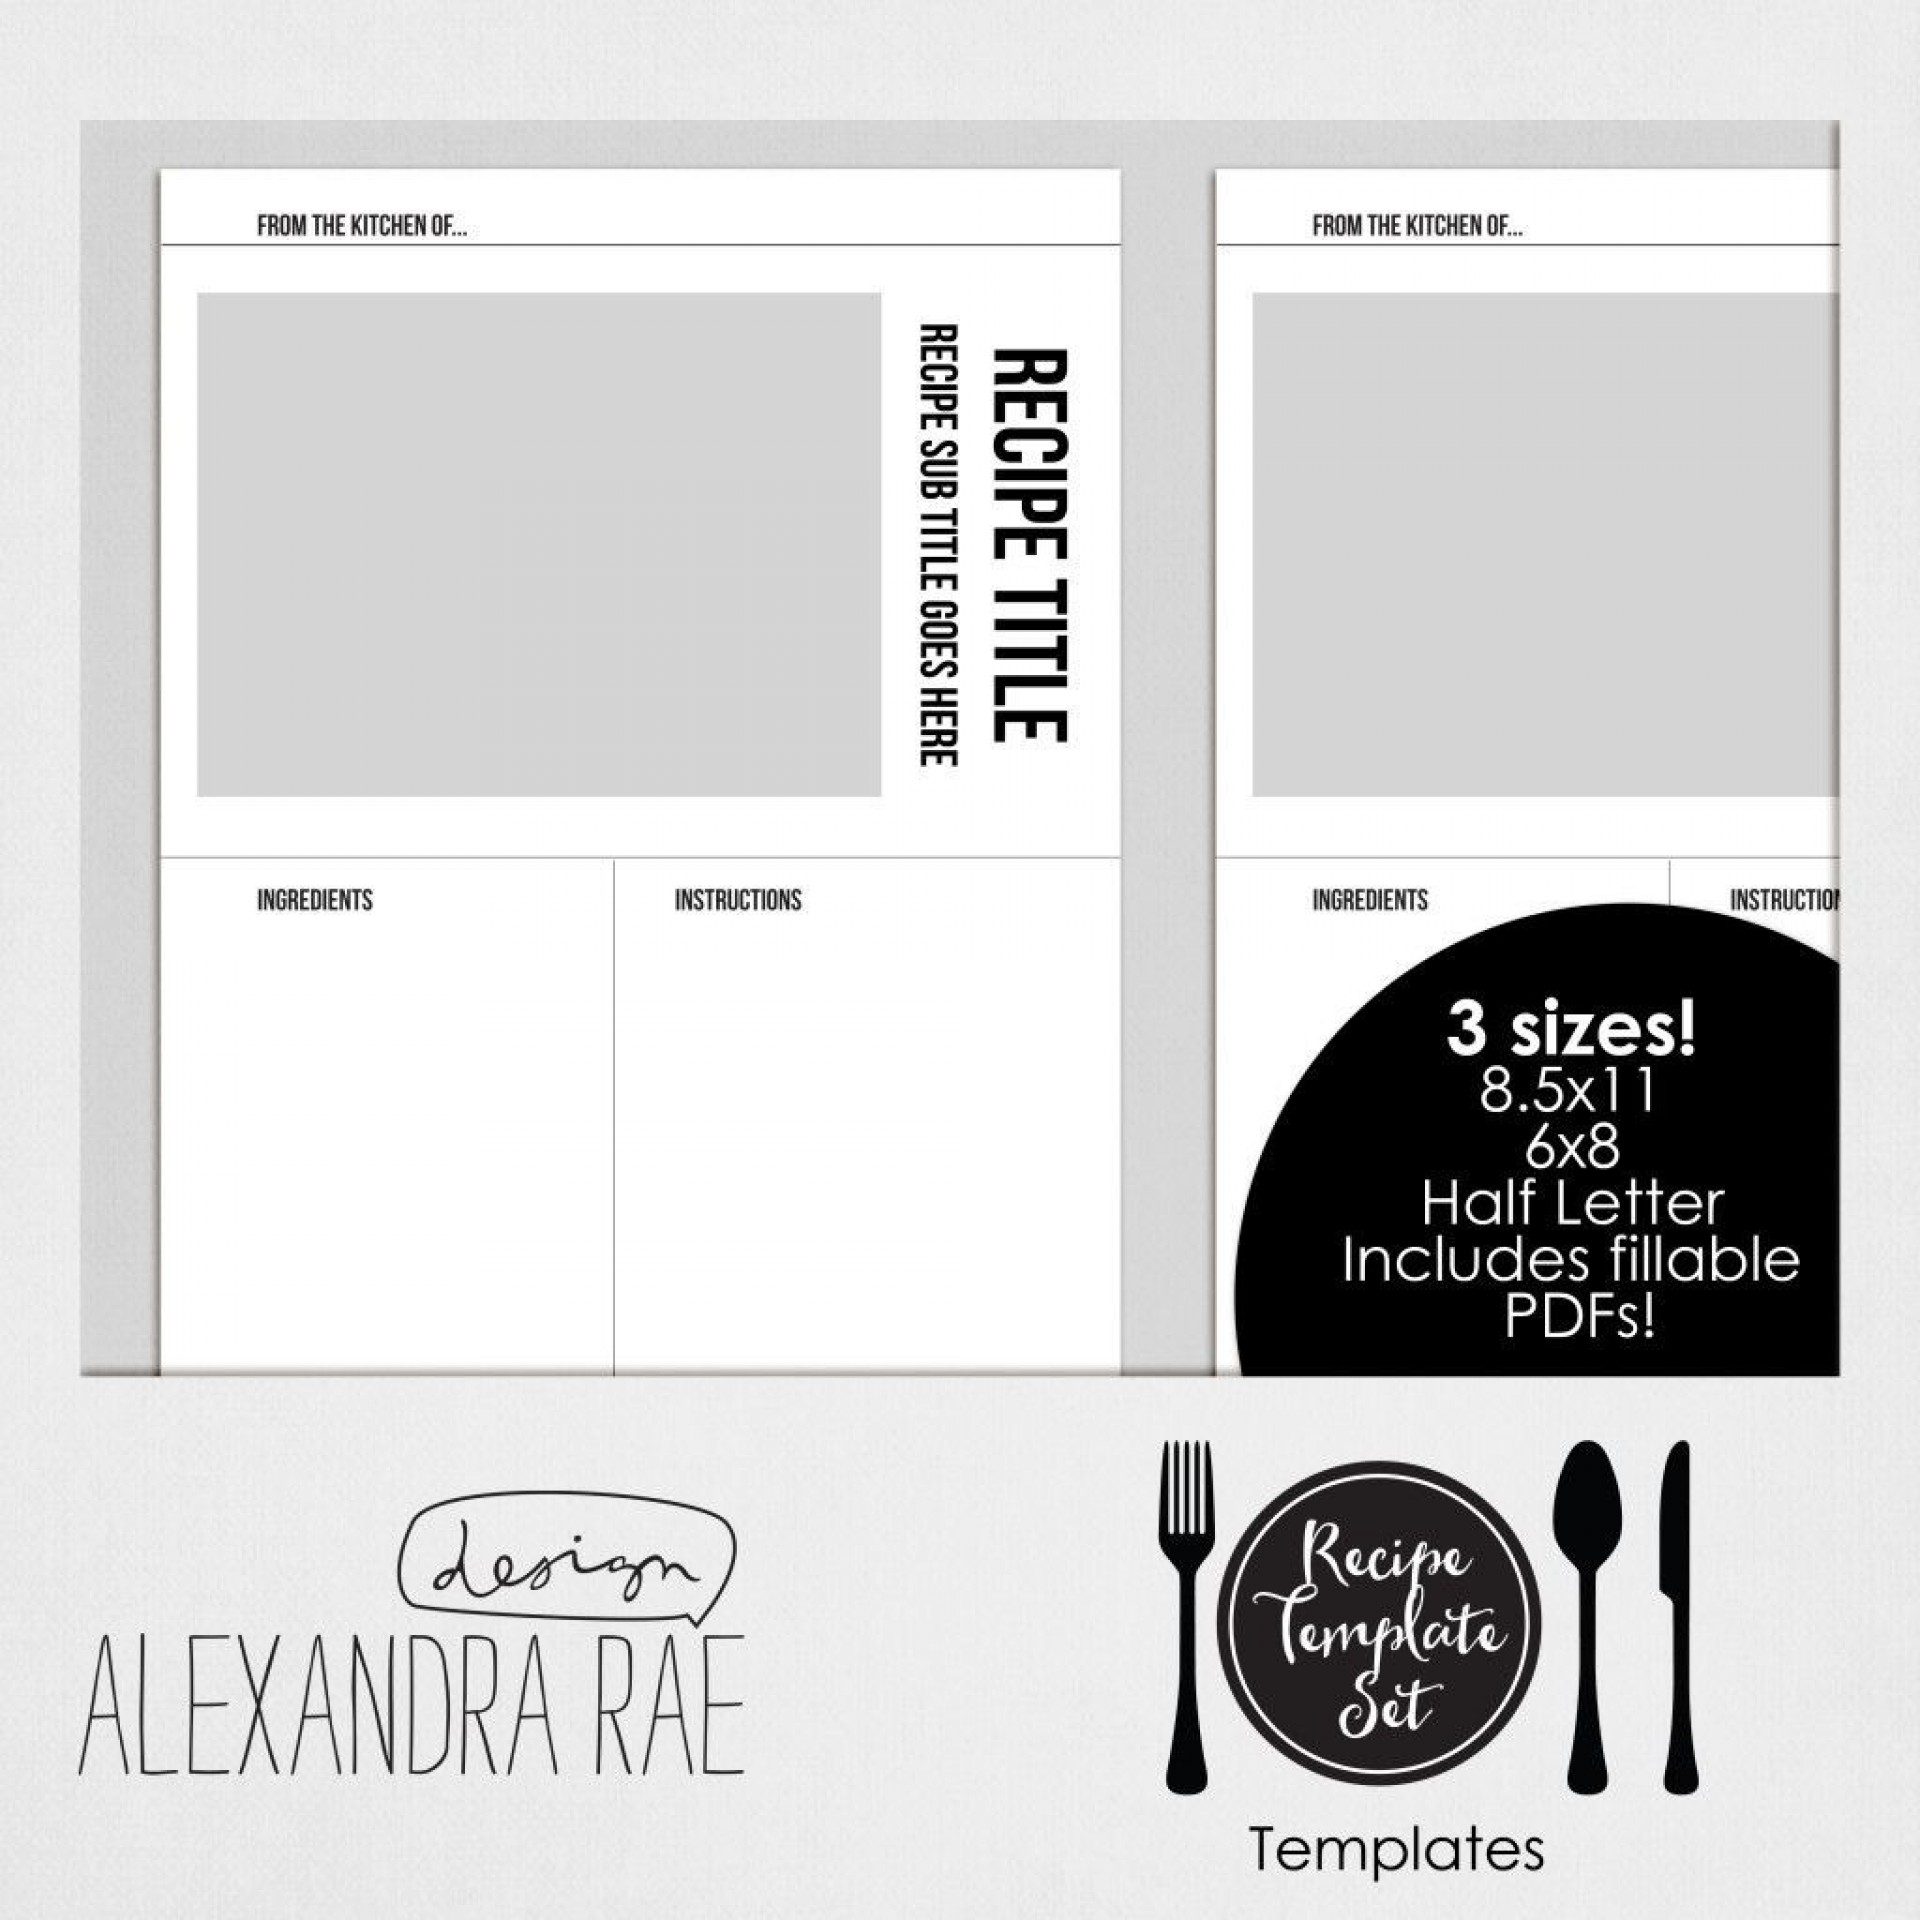 001 Archaicawful Make Your Own Cookbook Template High Resolution  Create Free1920